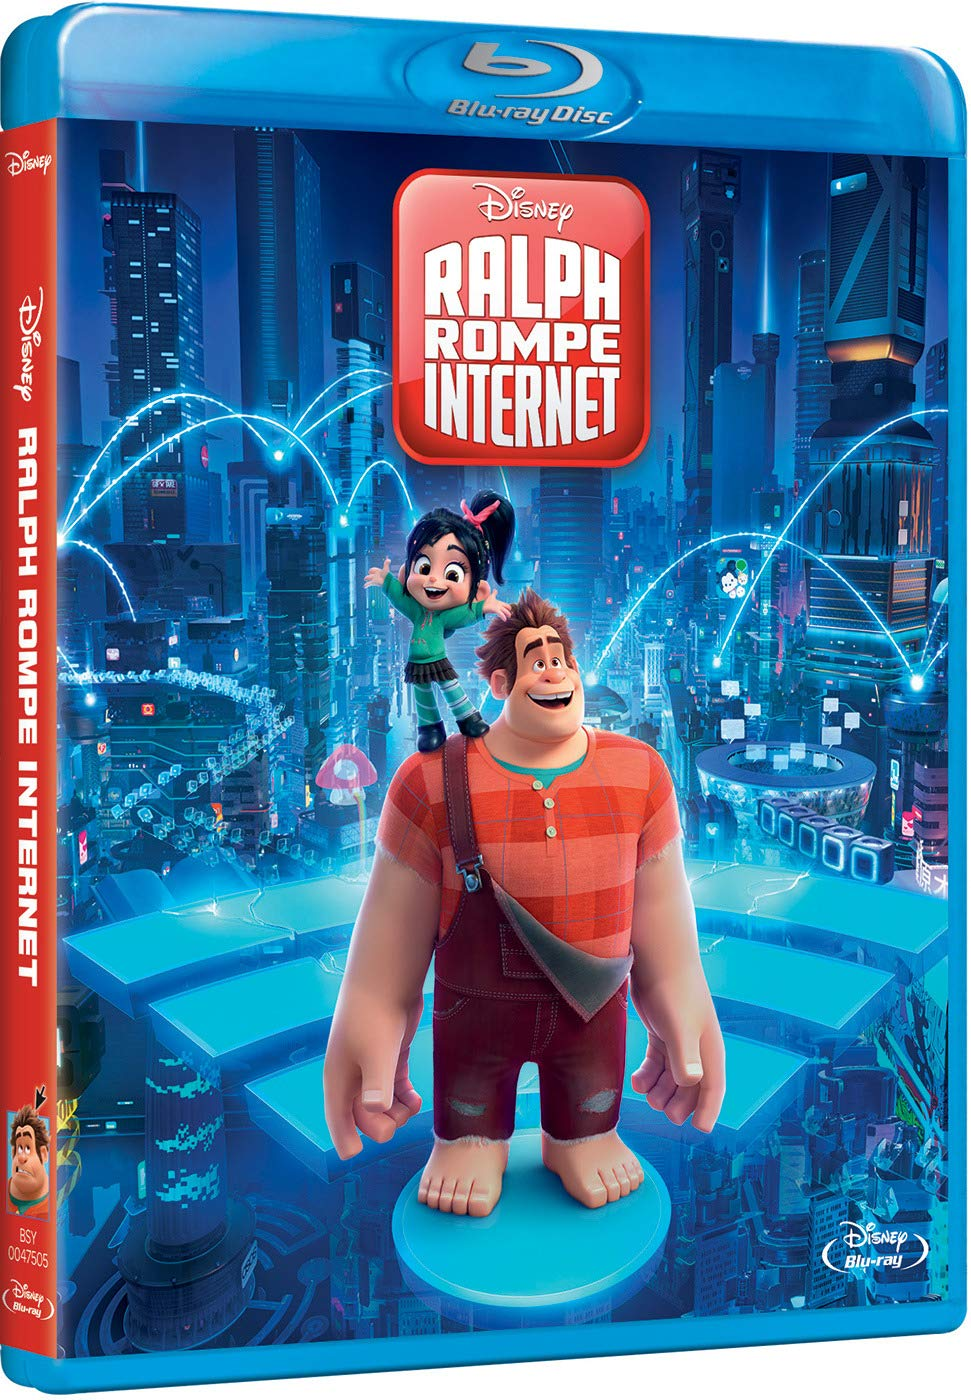 Ralph rompe internet en Blue-ray